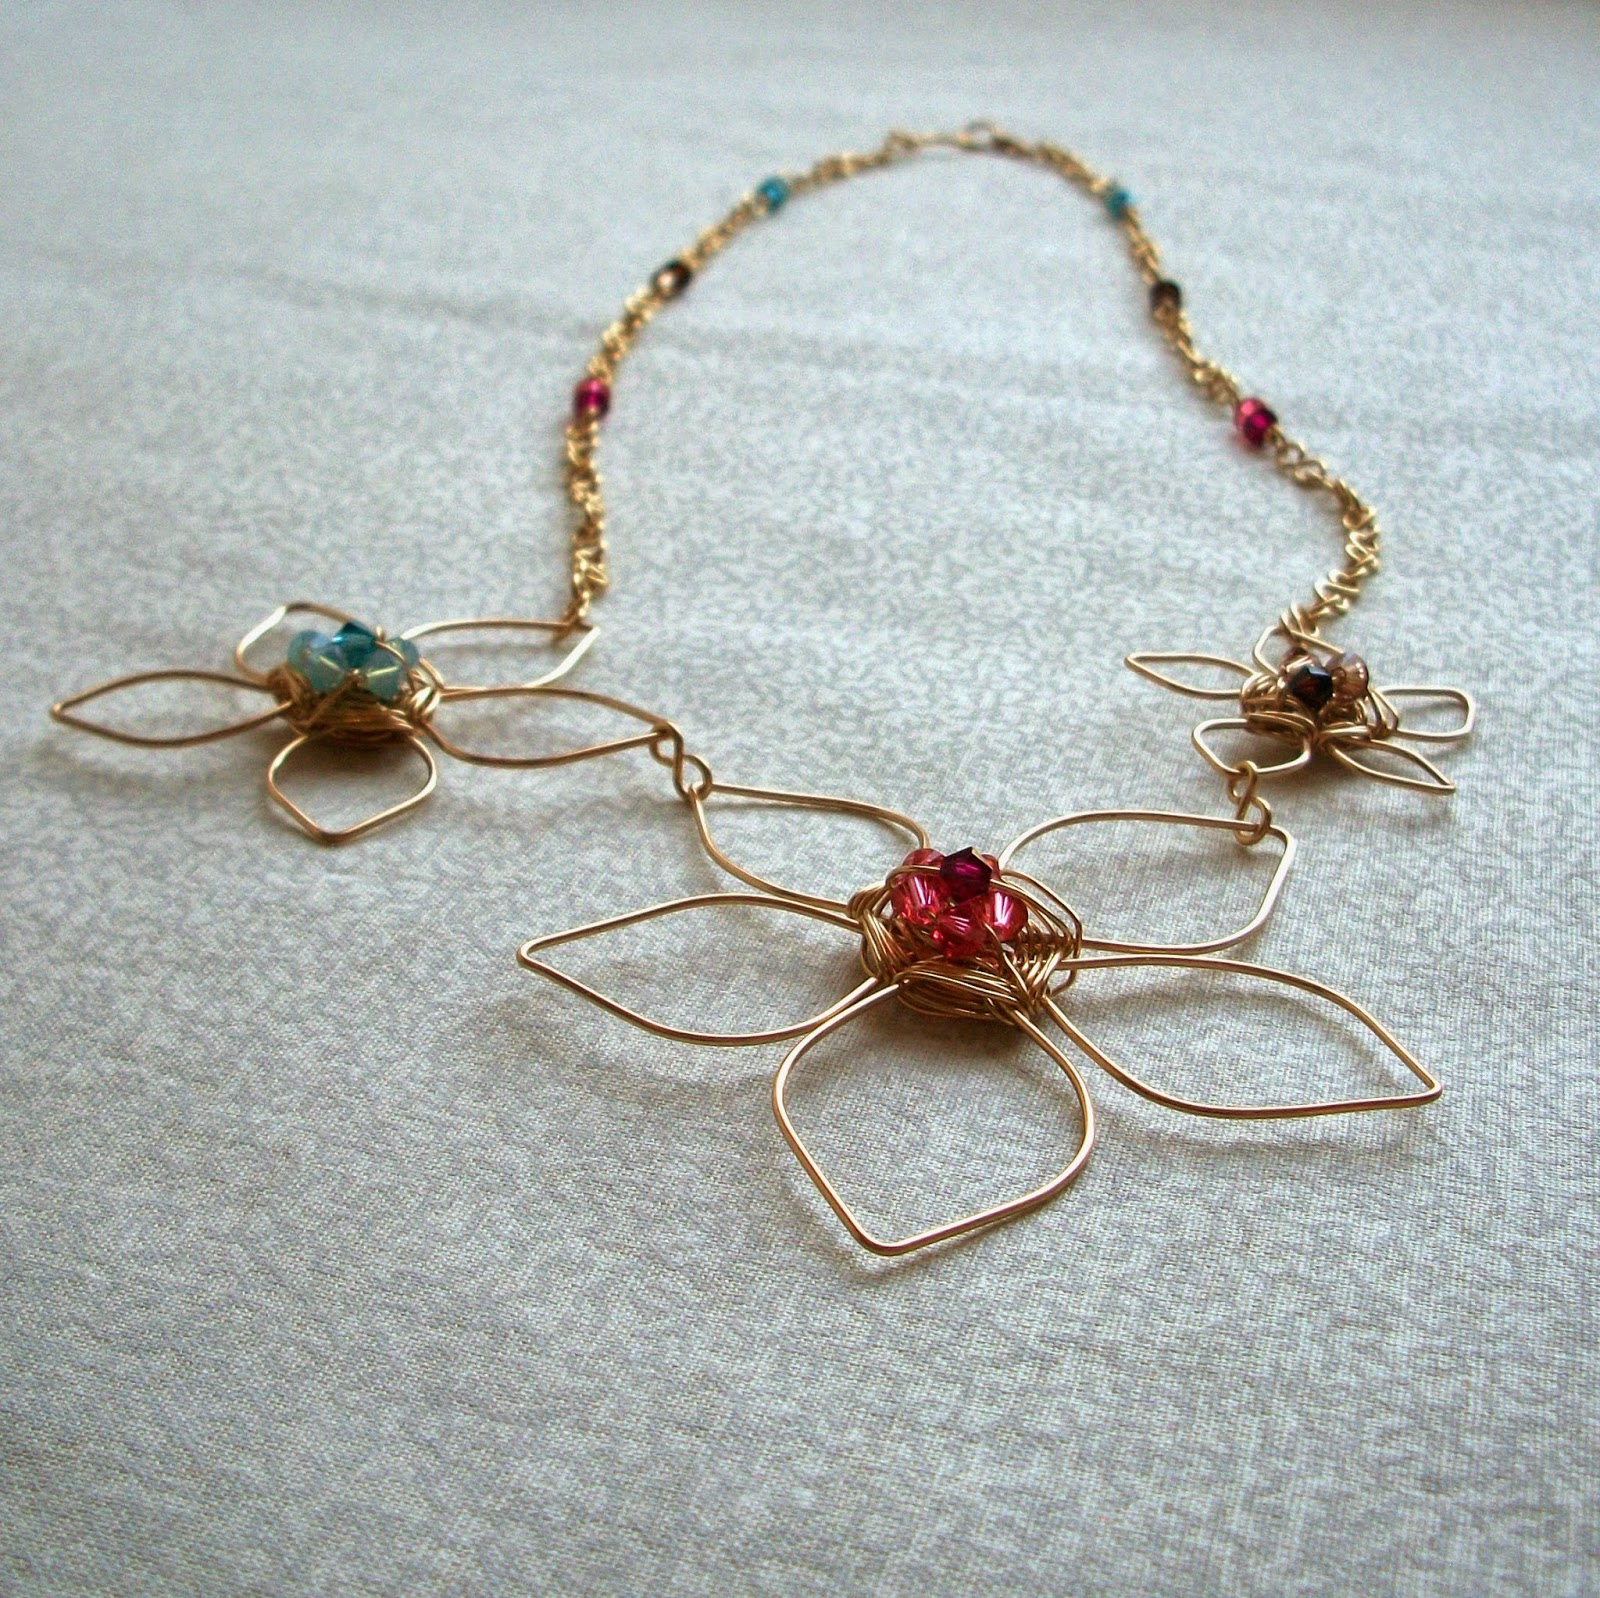 Wirework Flower Necklace with Teal, Coral & Brown Crystals